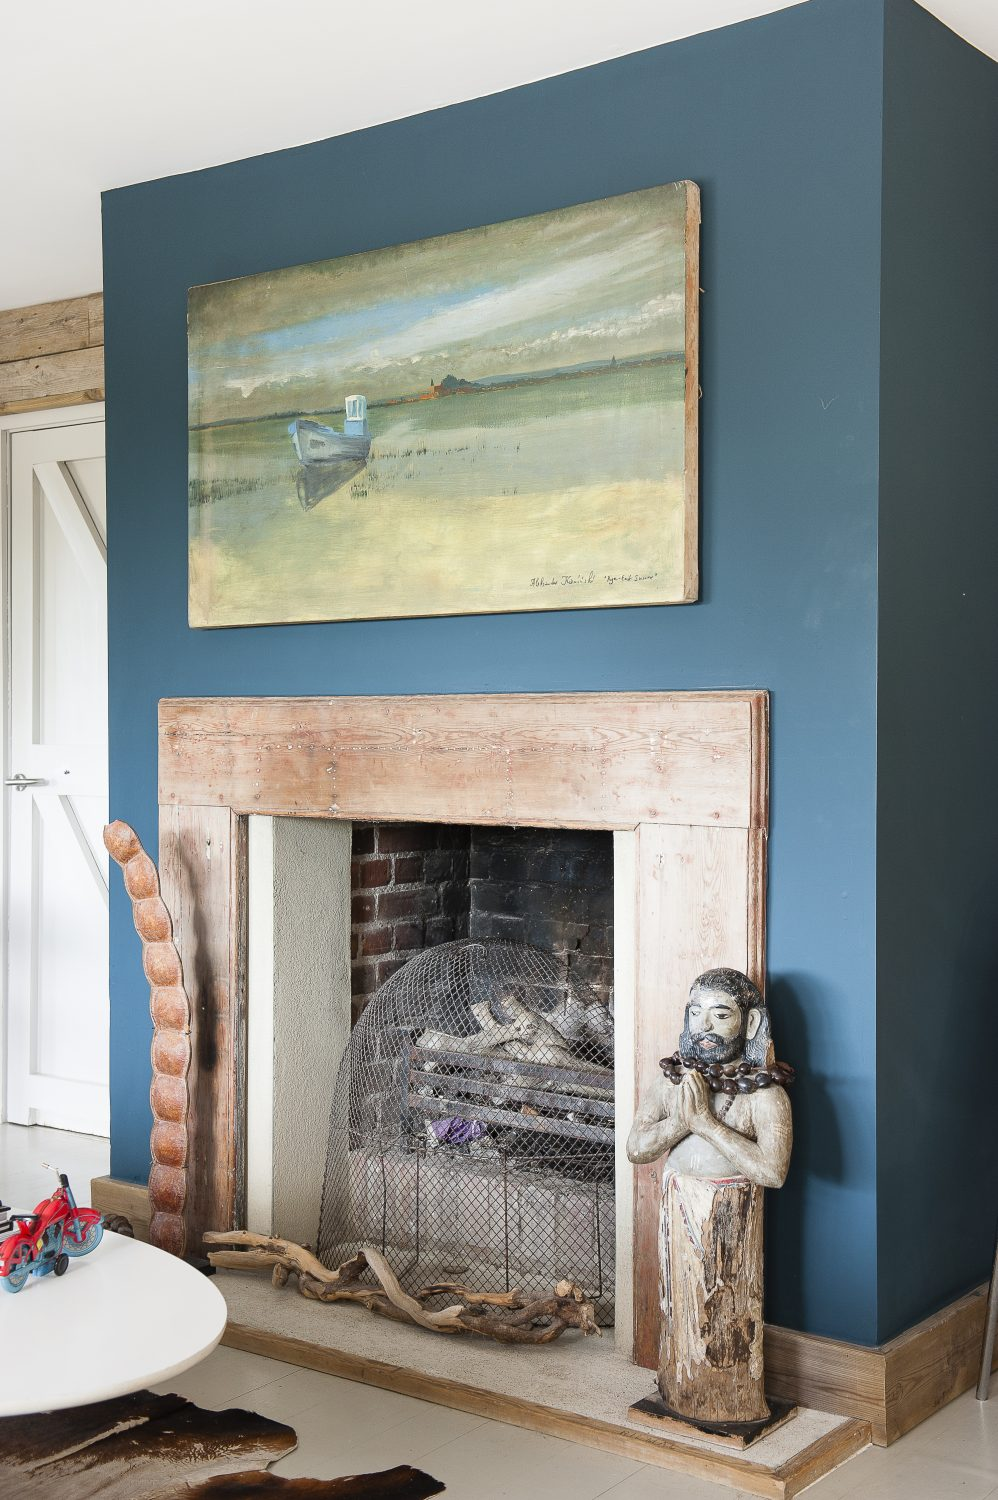 The fireplace in the sitting room